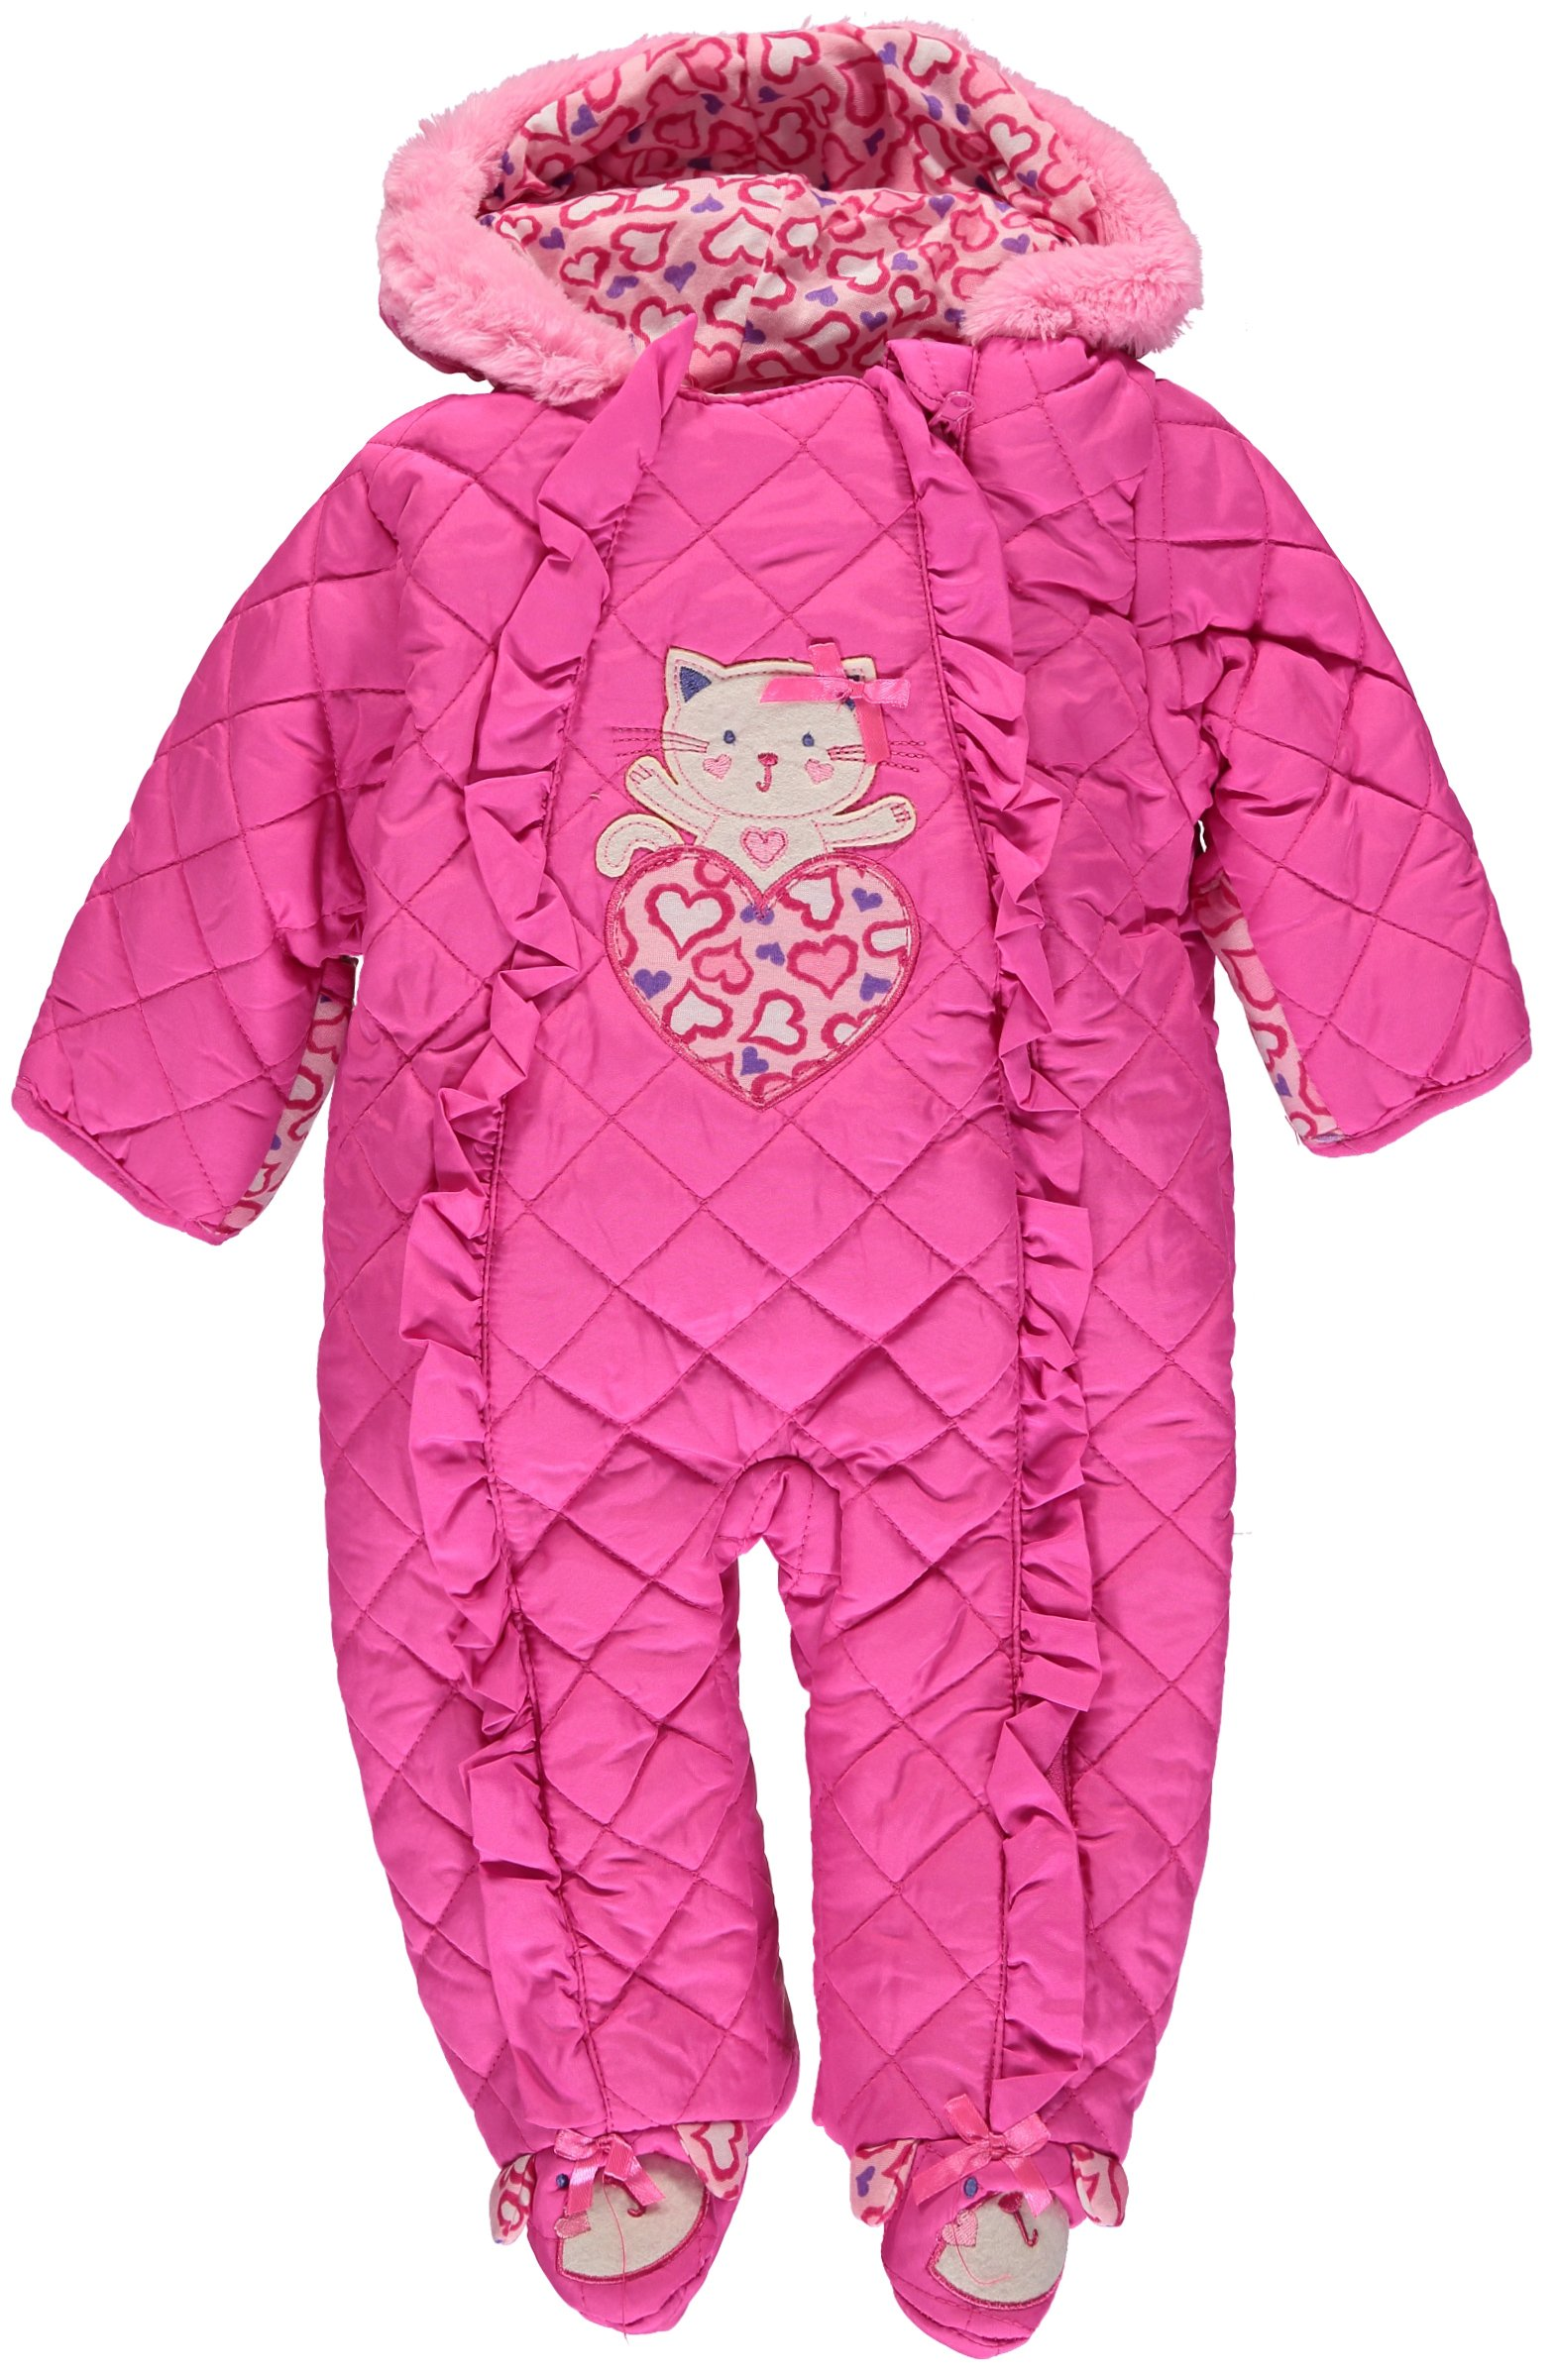 Duck Goose Baby Girls Cute Little Kitty Quilted Footed Ear Snow Pram Suit, Pink, 3-6 Months